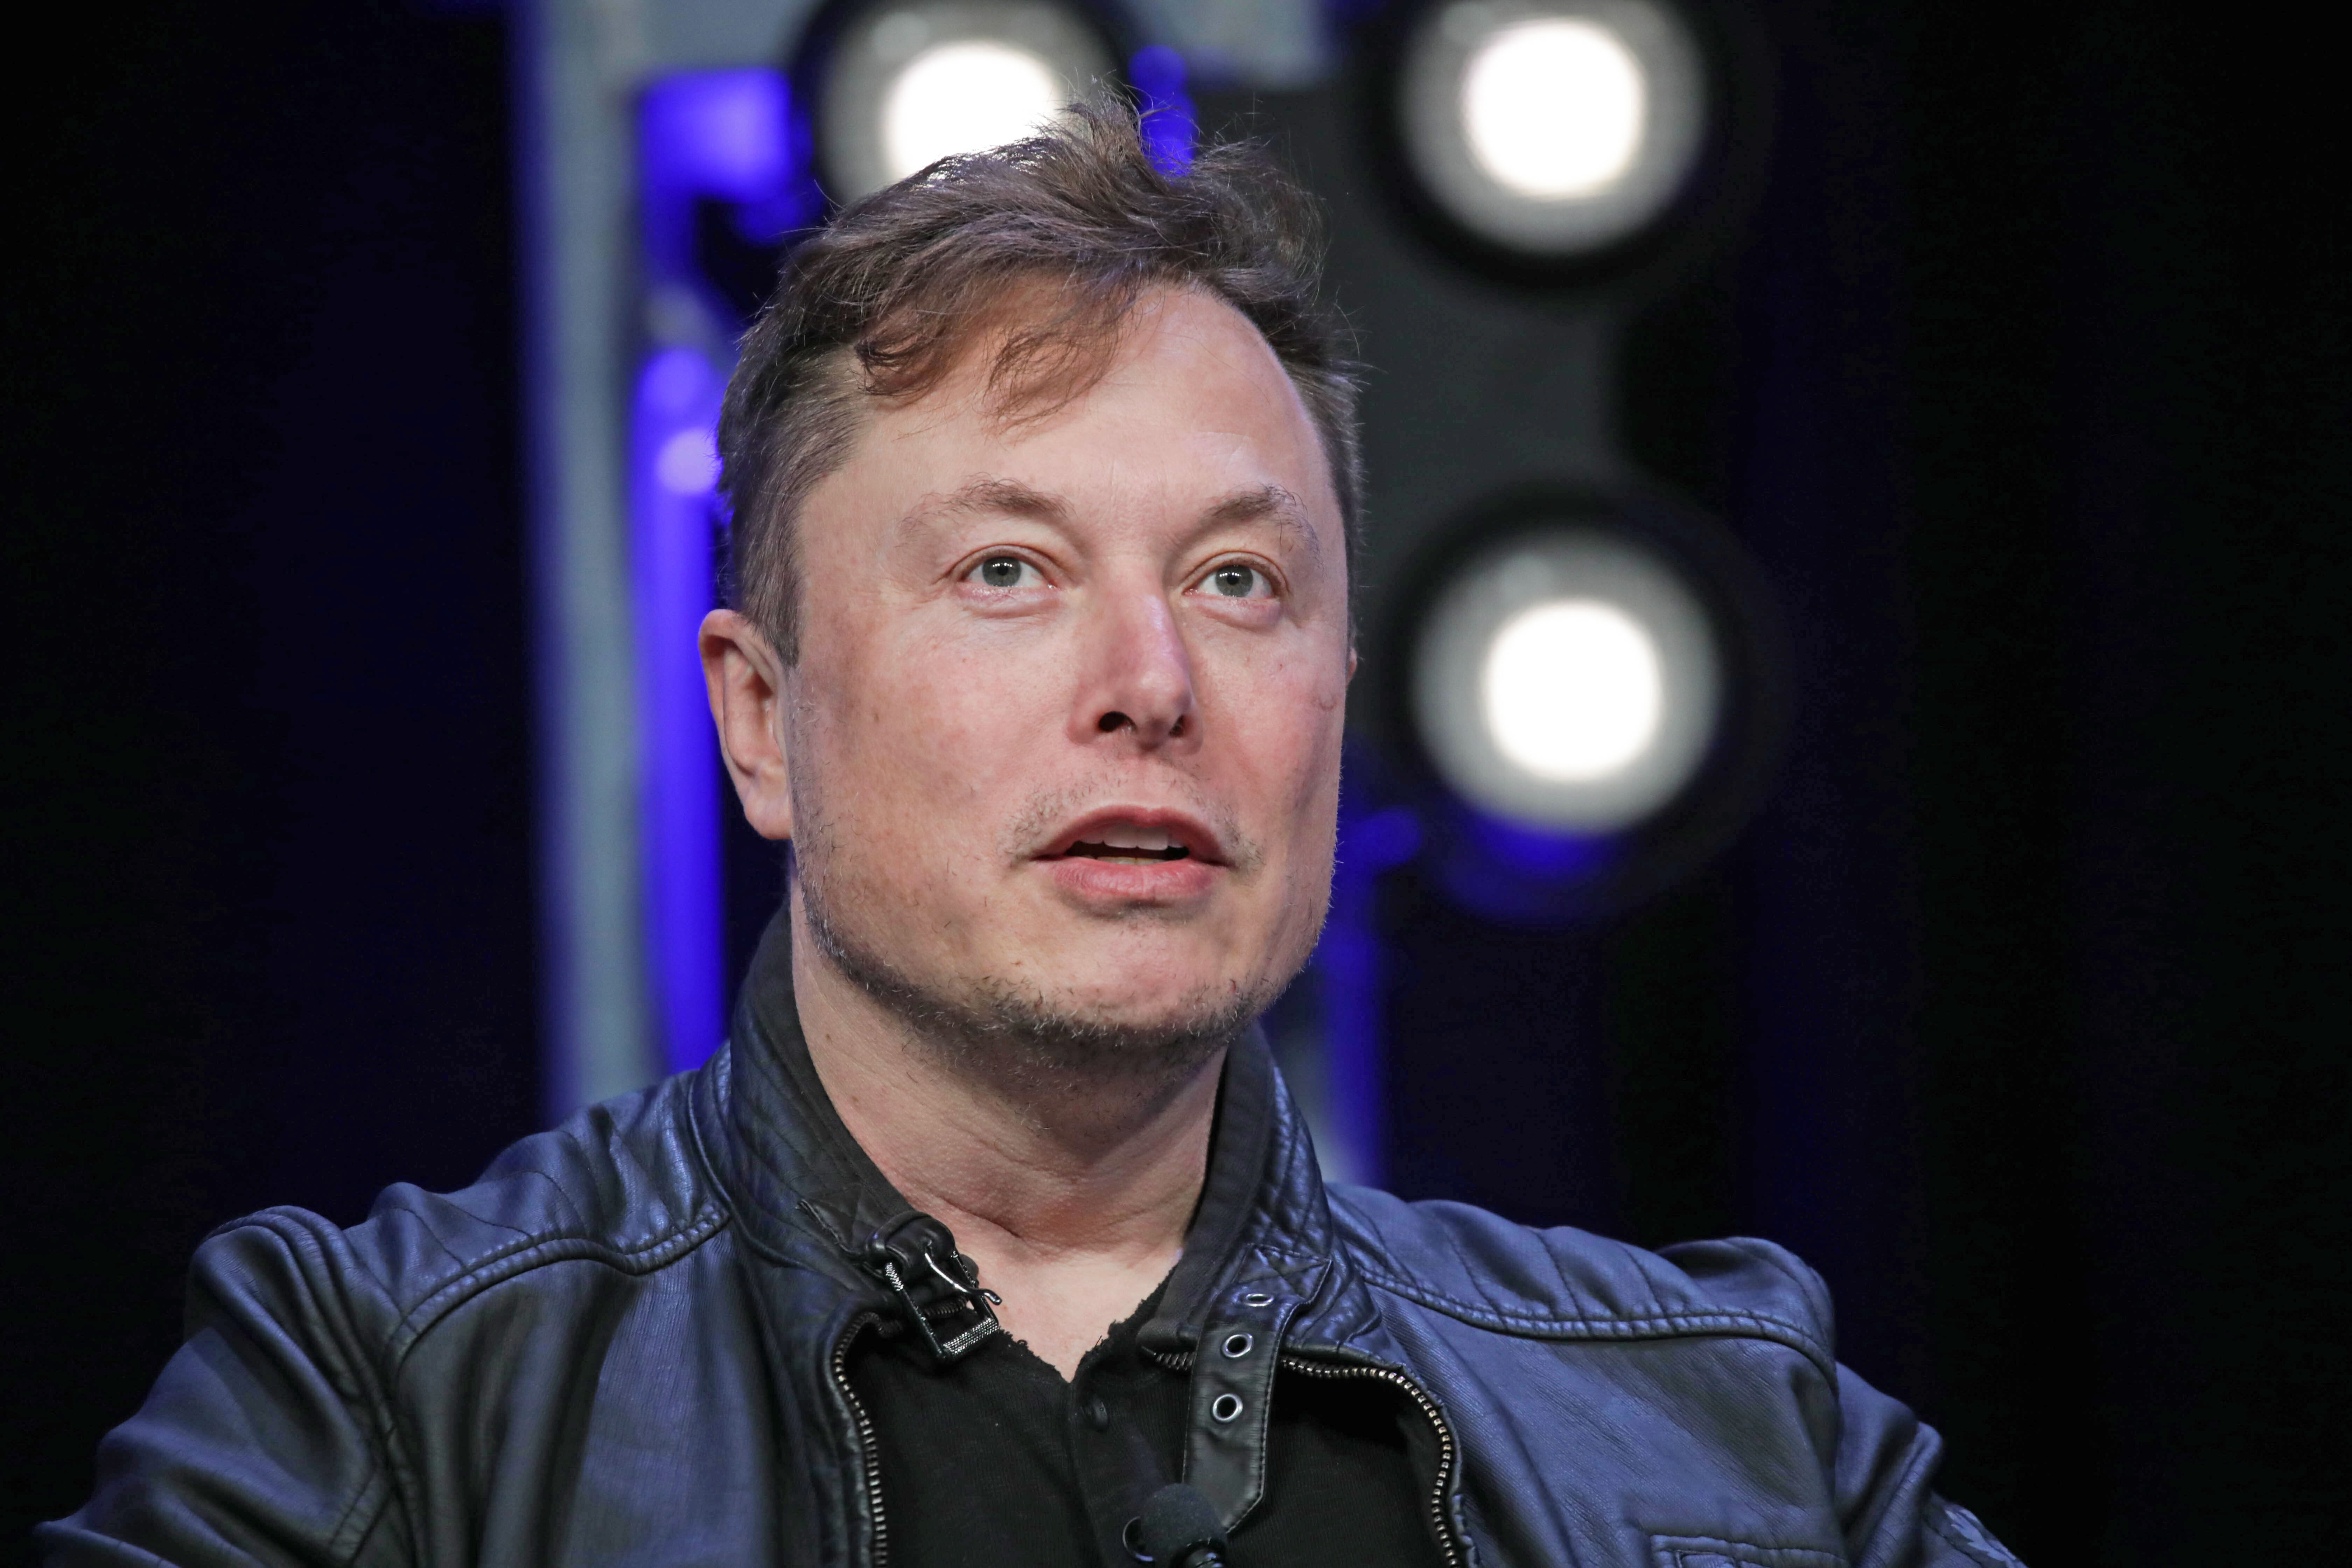 Crypto scammers hack Elon Musk, Biden, Obama, and Kanye on Twitter